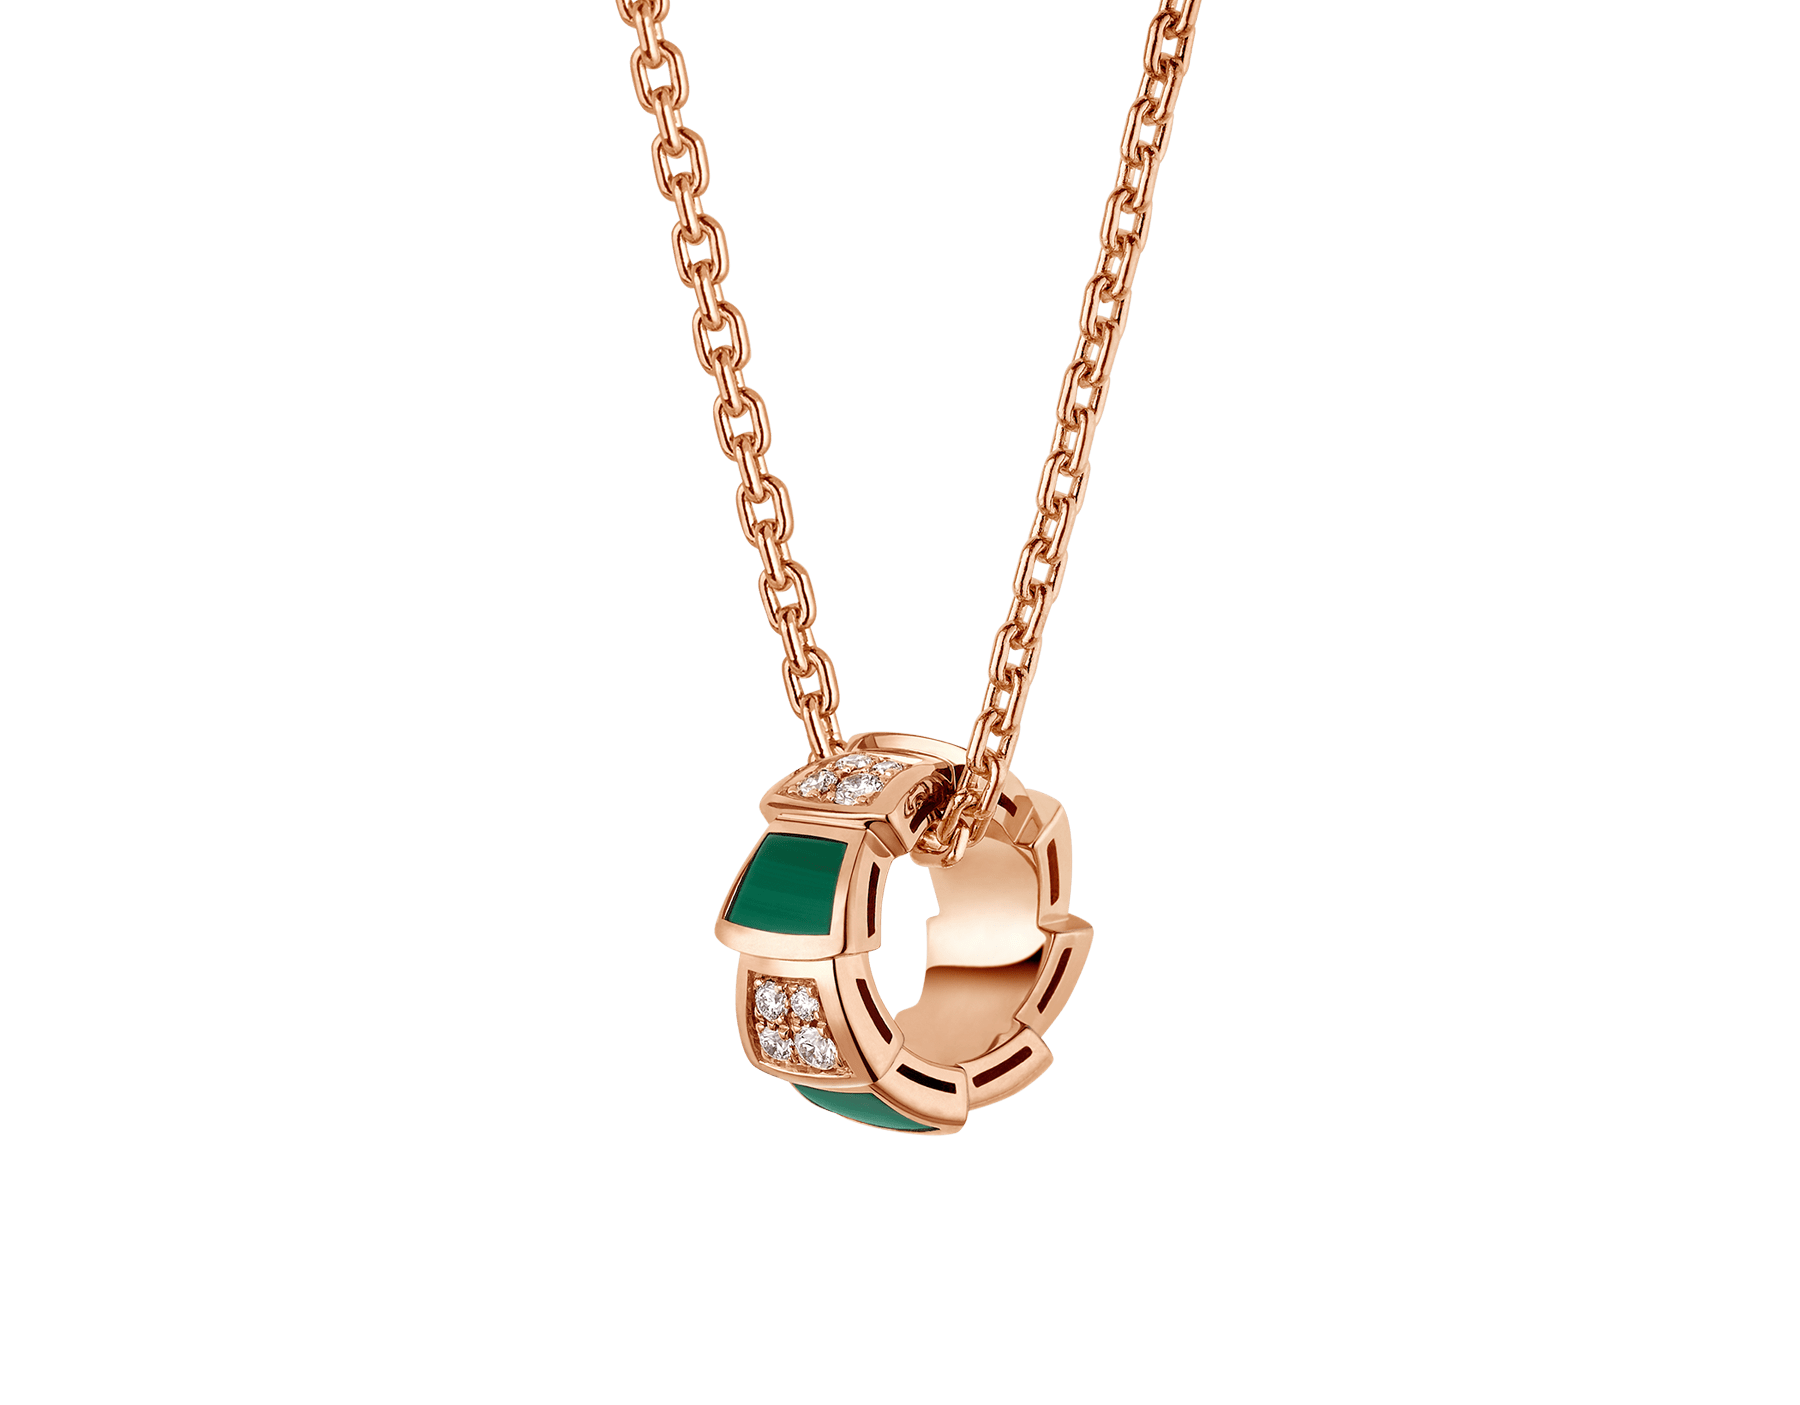 Serpenti Viper 18 kt rose gold necklace set with malachite elements and pavé diamonds on the pendant. 355958 image 1